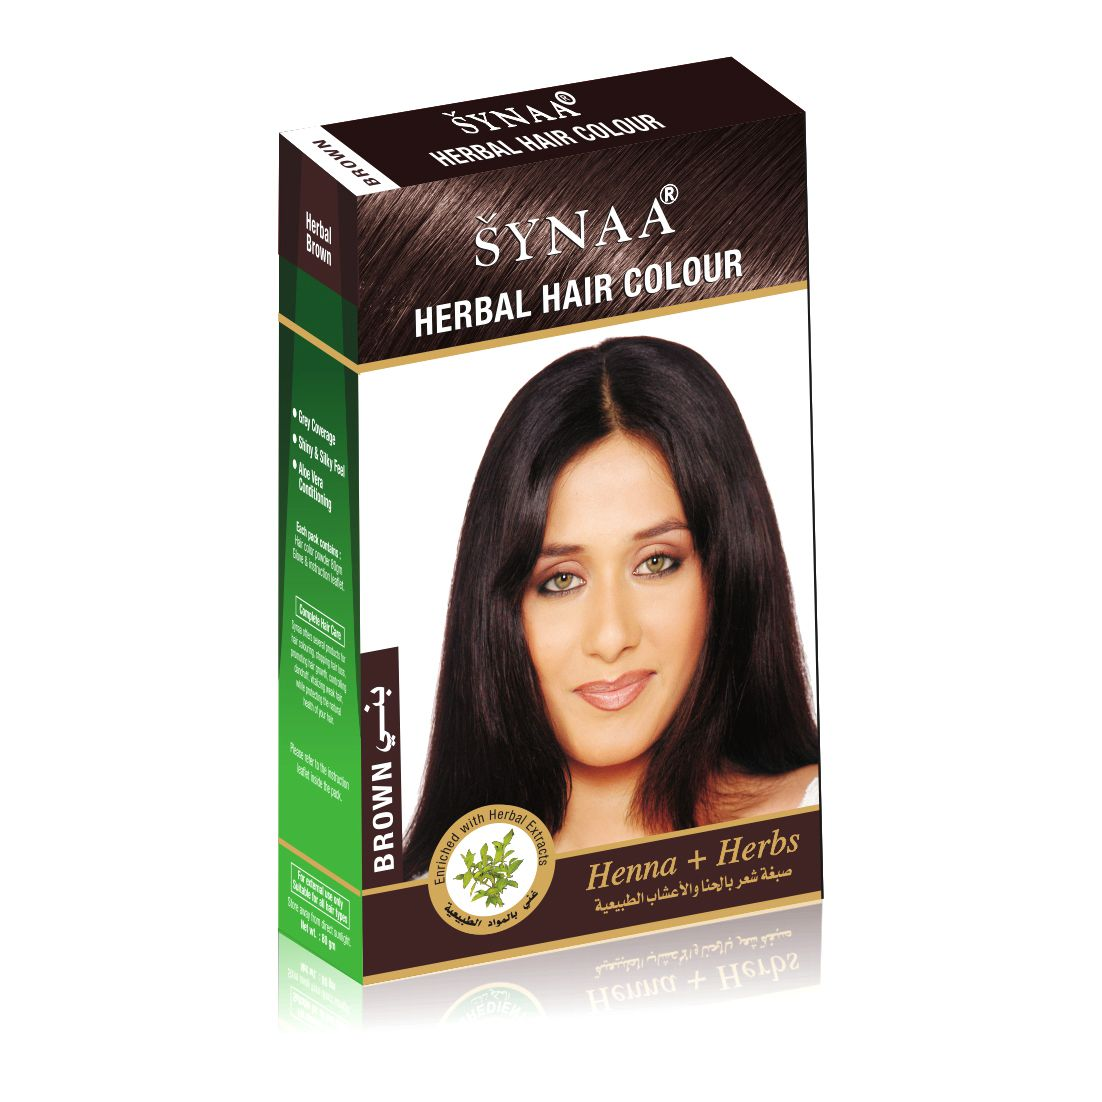 Herbal Hair Color Brown Henna Herbs No Ppd 80g Herbal Hair